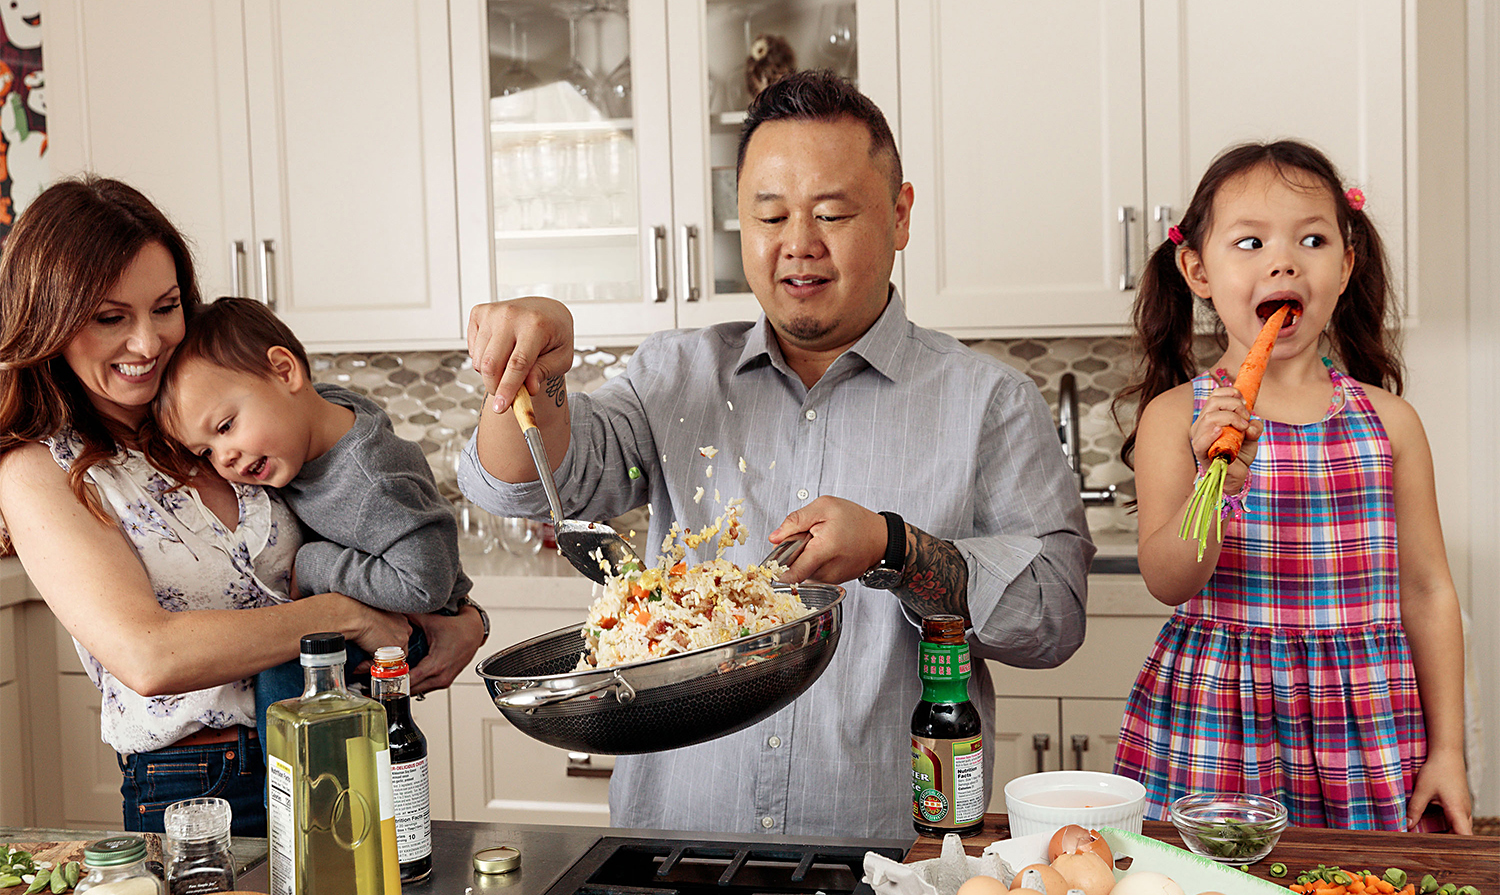 chef Jet Tila cooking with family in kitchen